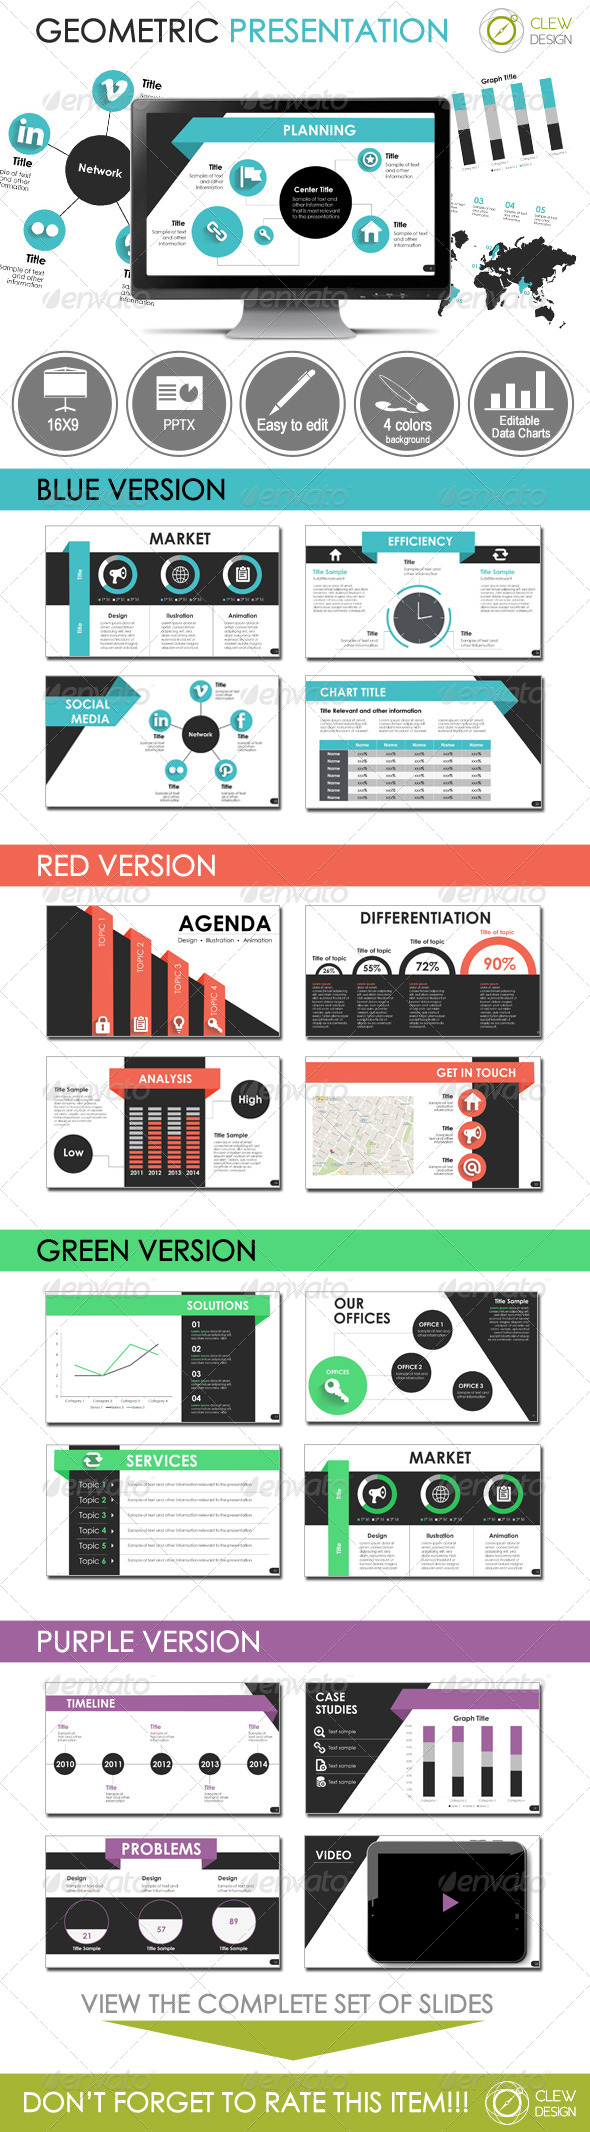 GraphicRiver Geometric Presentation Template 7190760